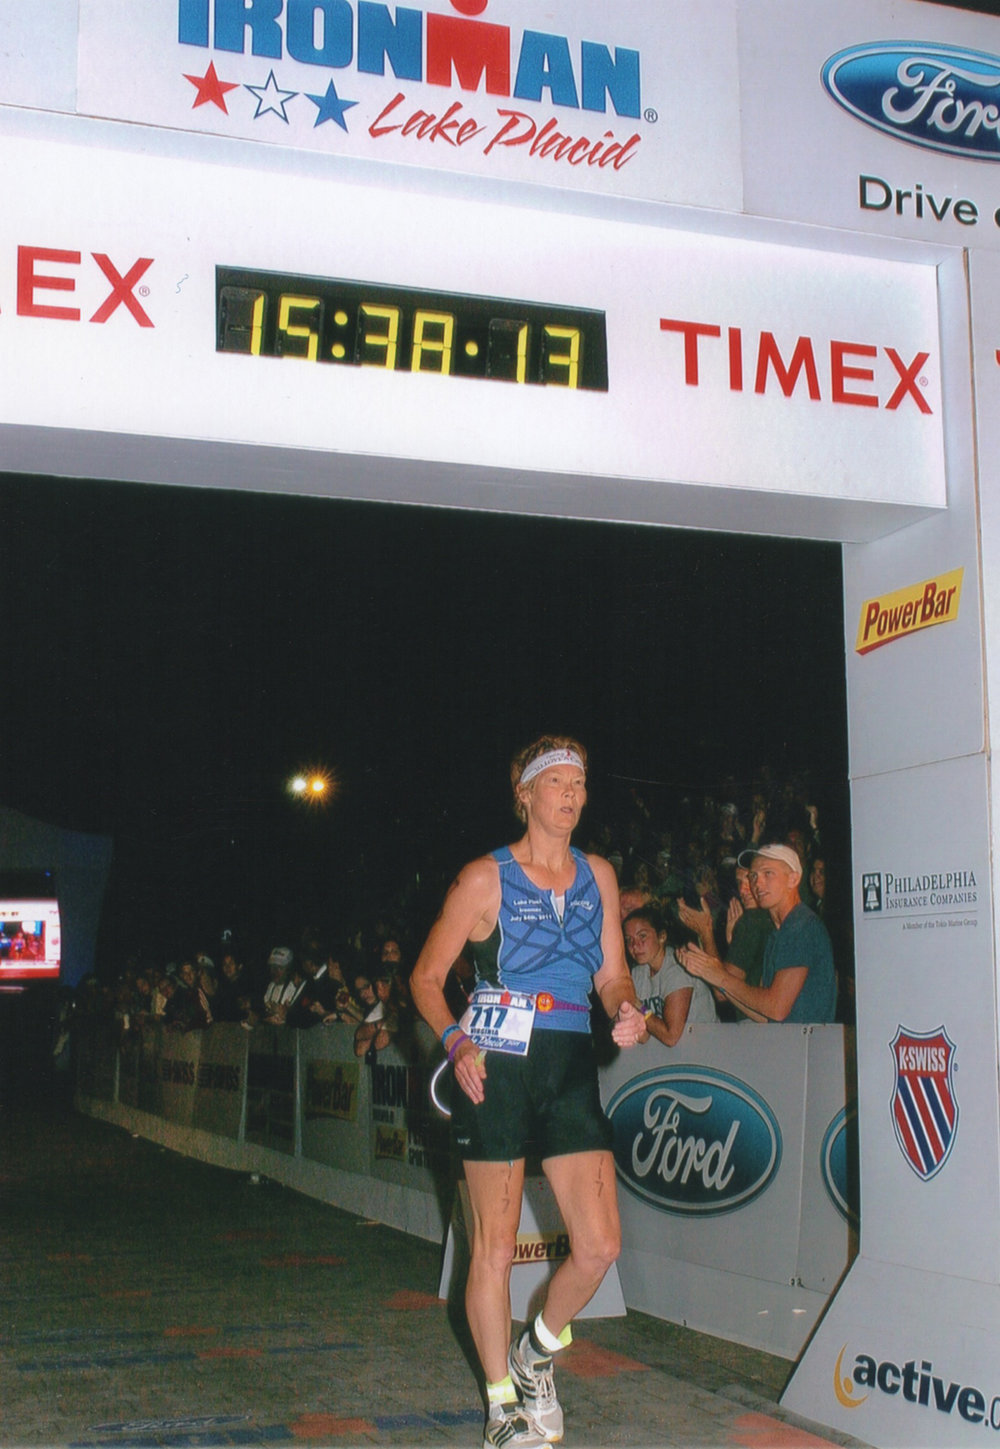 Finishing the 2011  Ironman  Lake Placid.